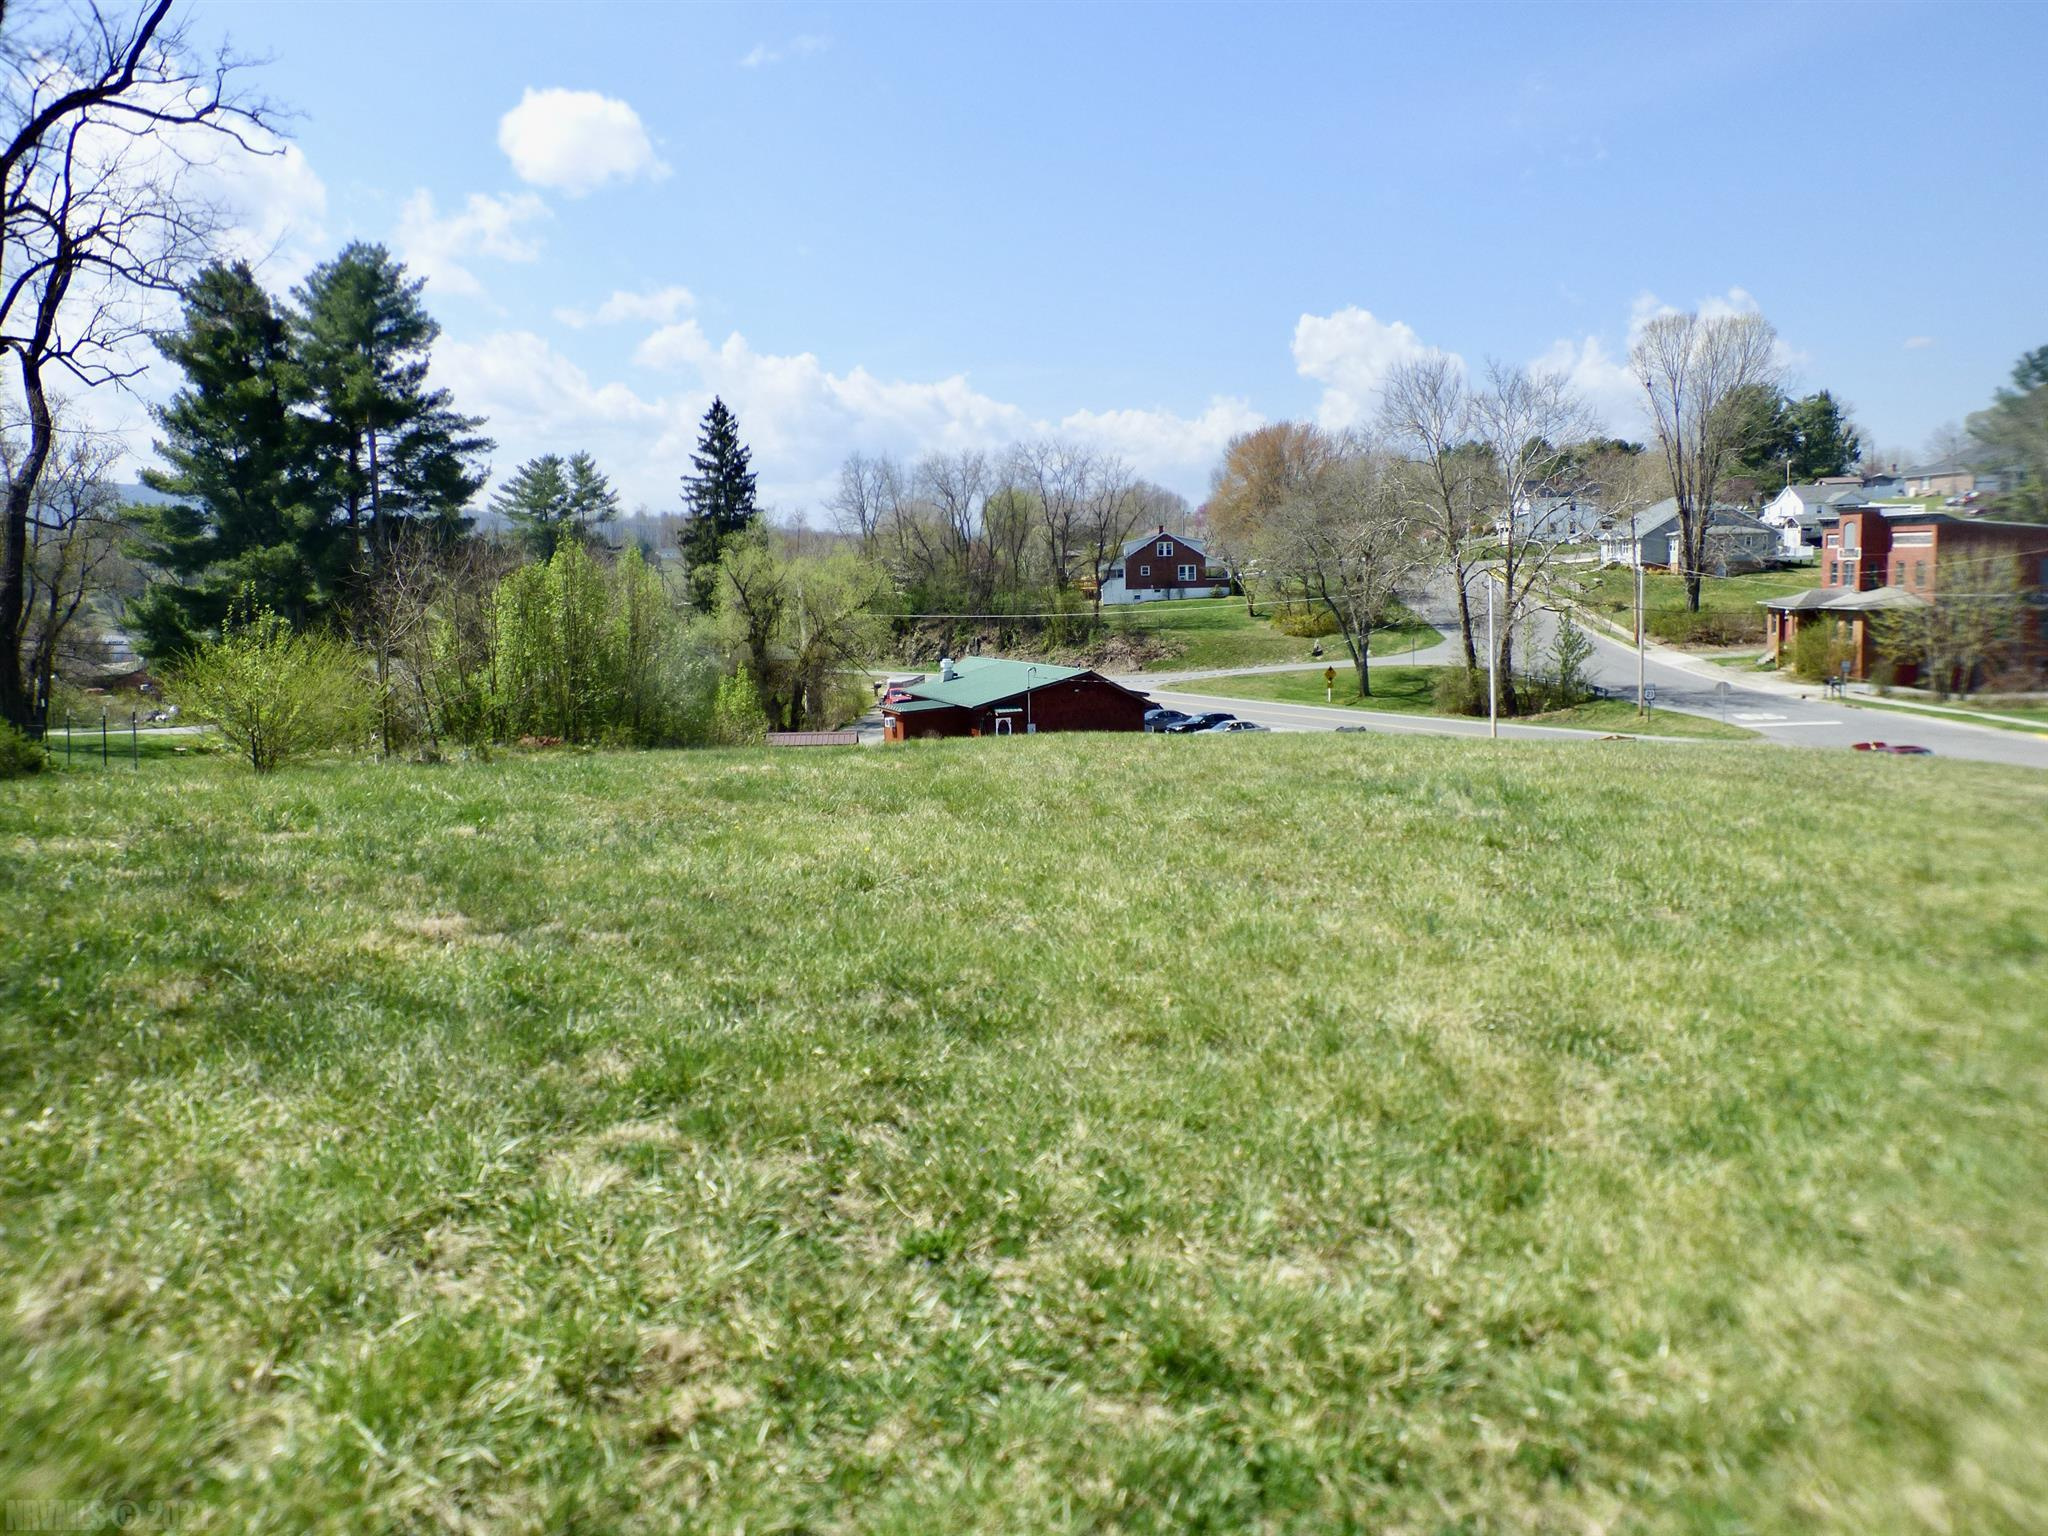 A blank slate awaits the buyer of this lot located on West Main Street in Wytheville, Va. Zoned B-2; this property has loads of potential. From single-family housing to multi-family or build your business office here. Priced to sell. Call today before it is gone.